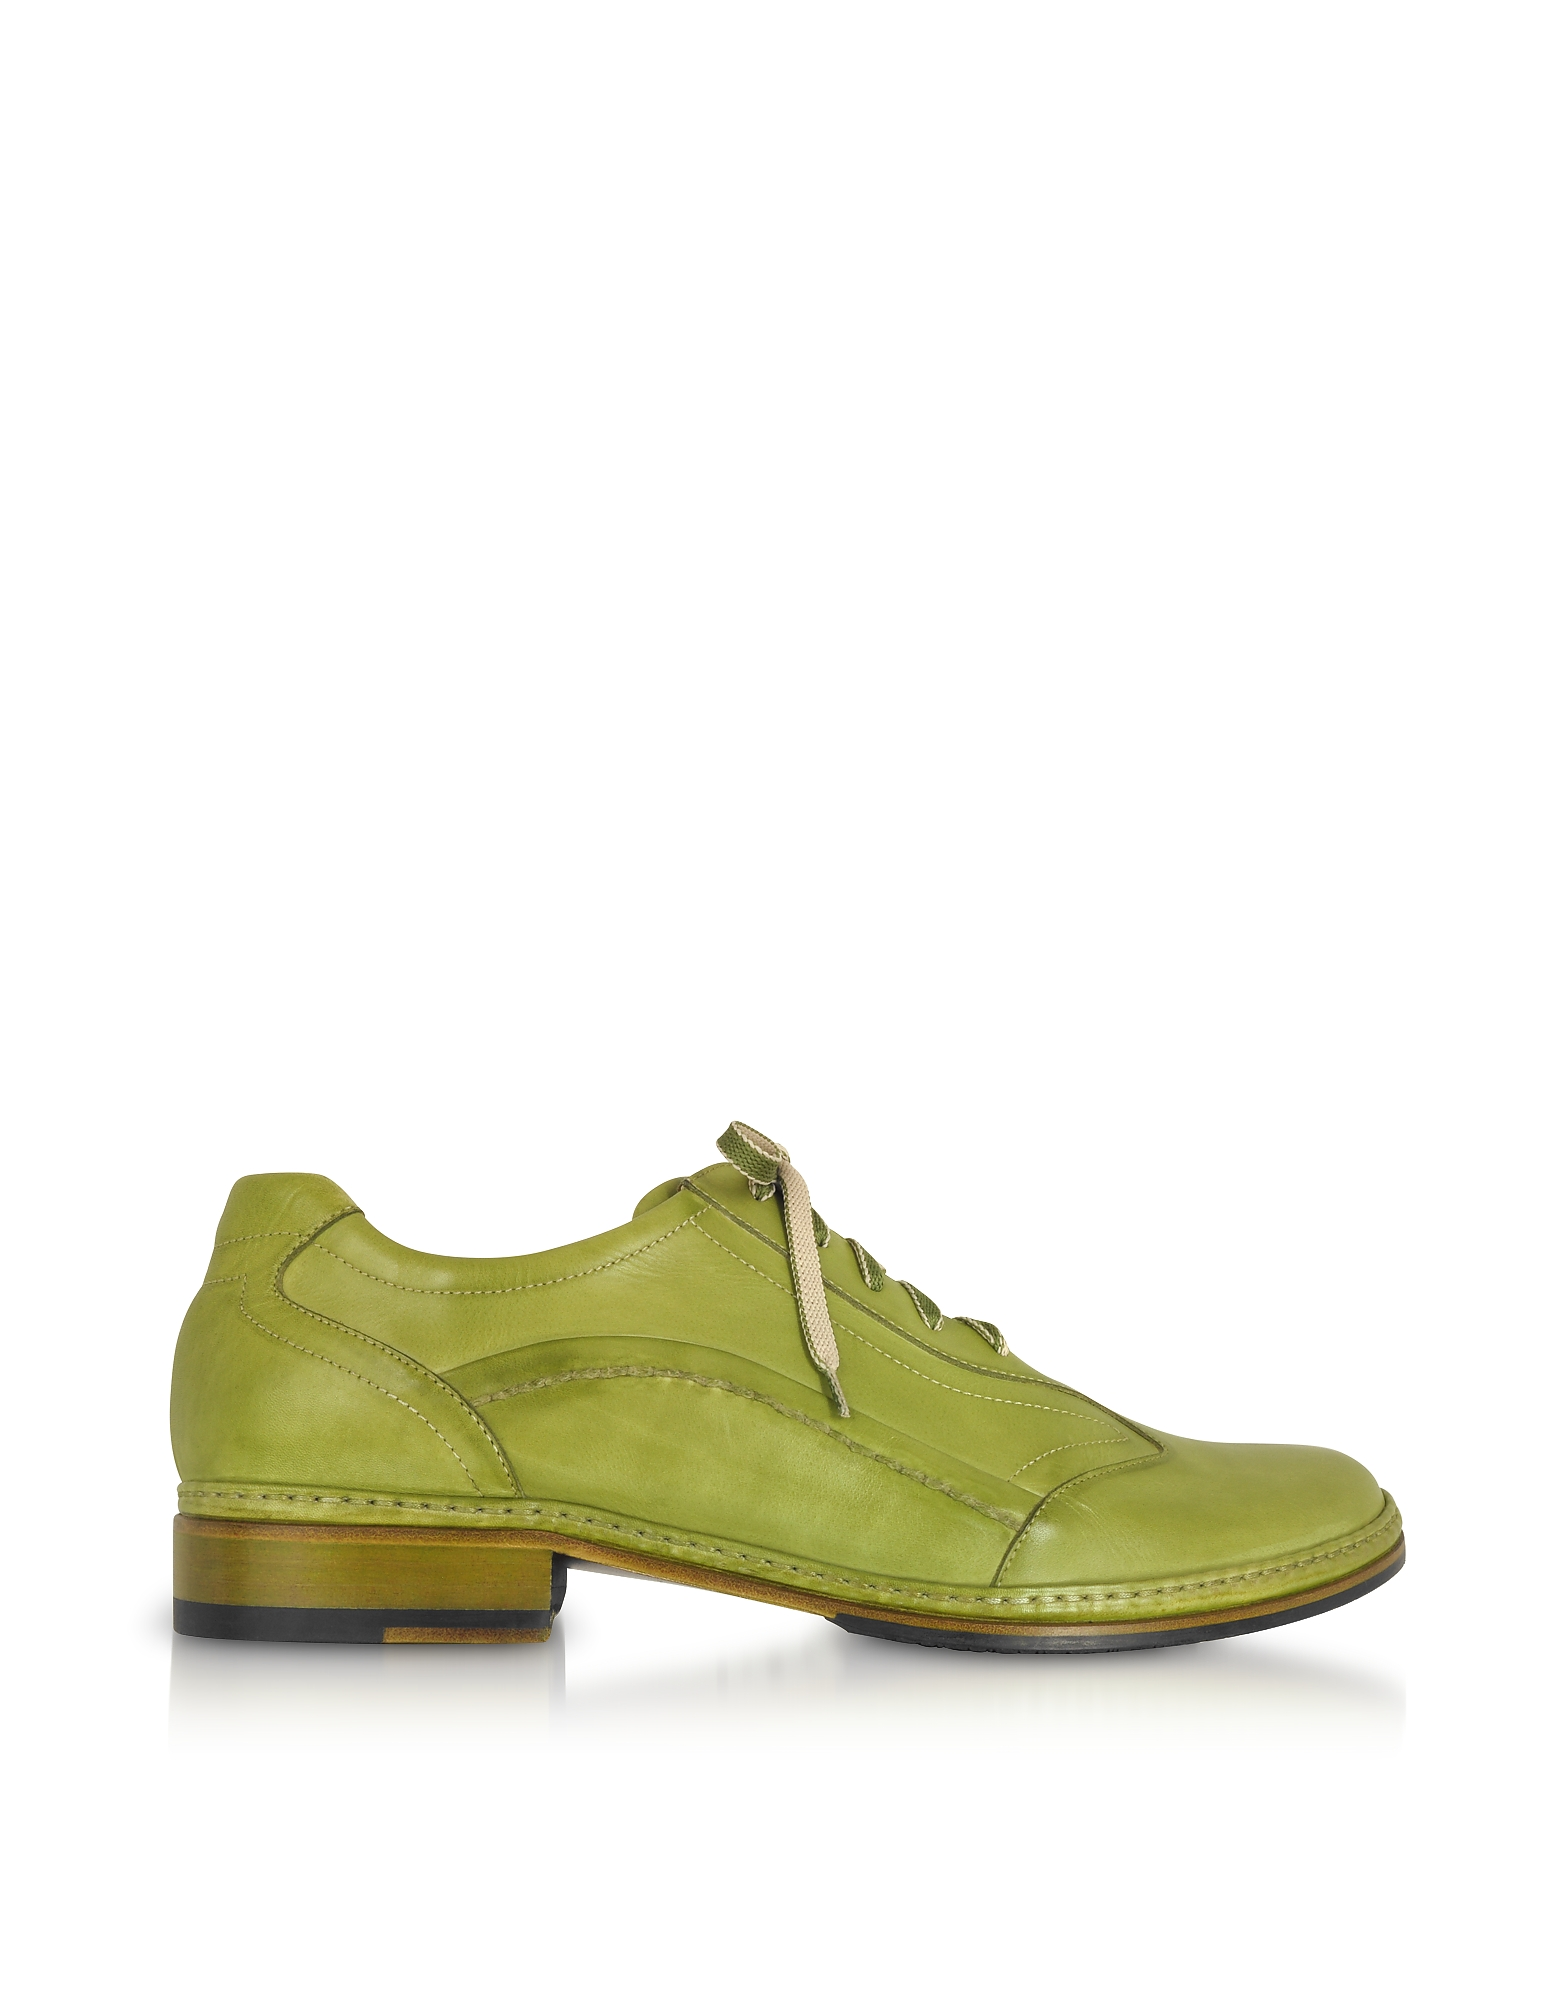 Pakerson Shoes, Pistachio Green Italian Handmade Leather Lace-up Shoes